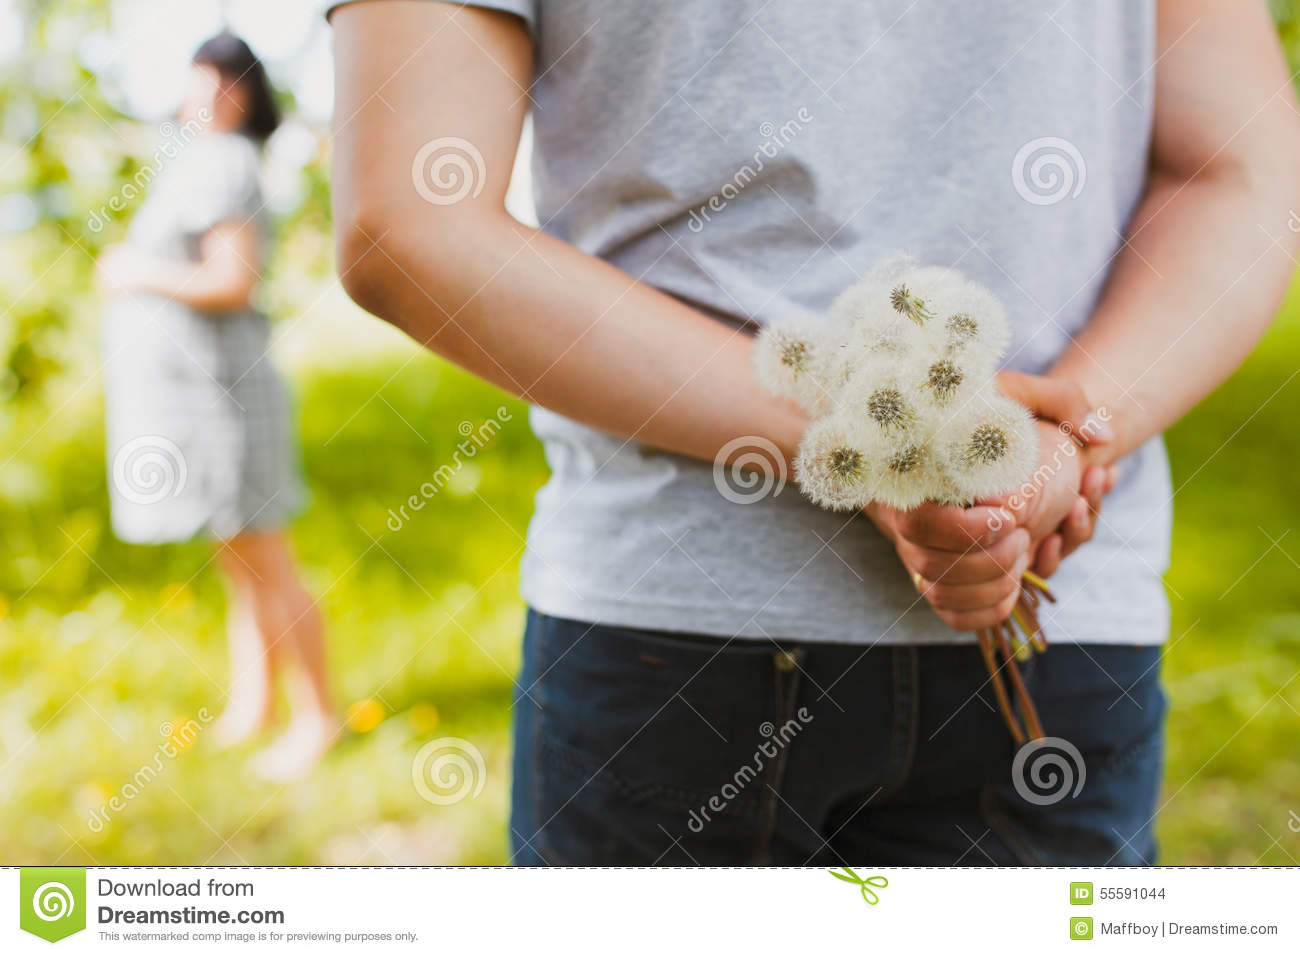 Man ready to give flowers to girlfriend